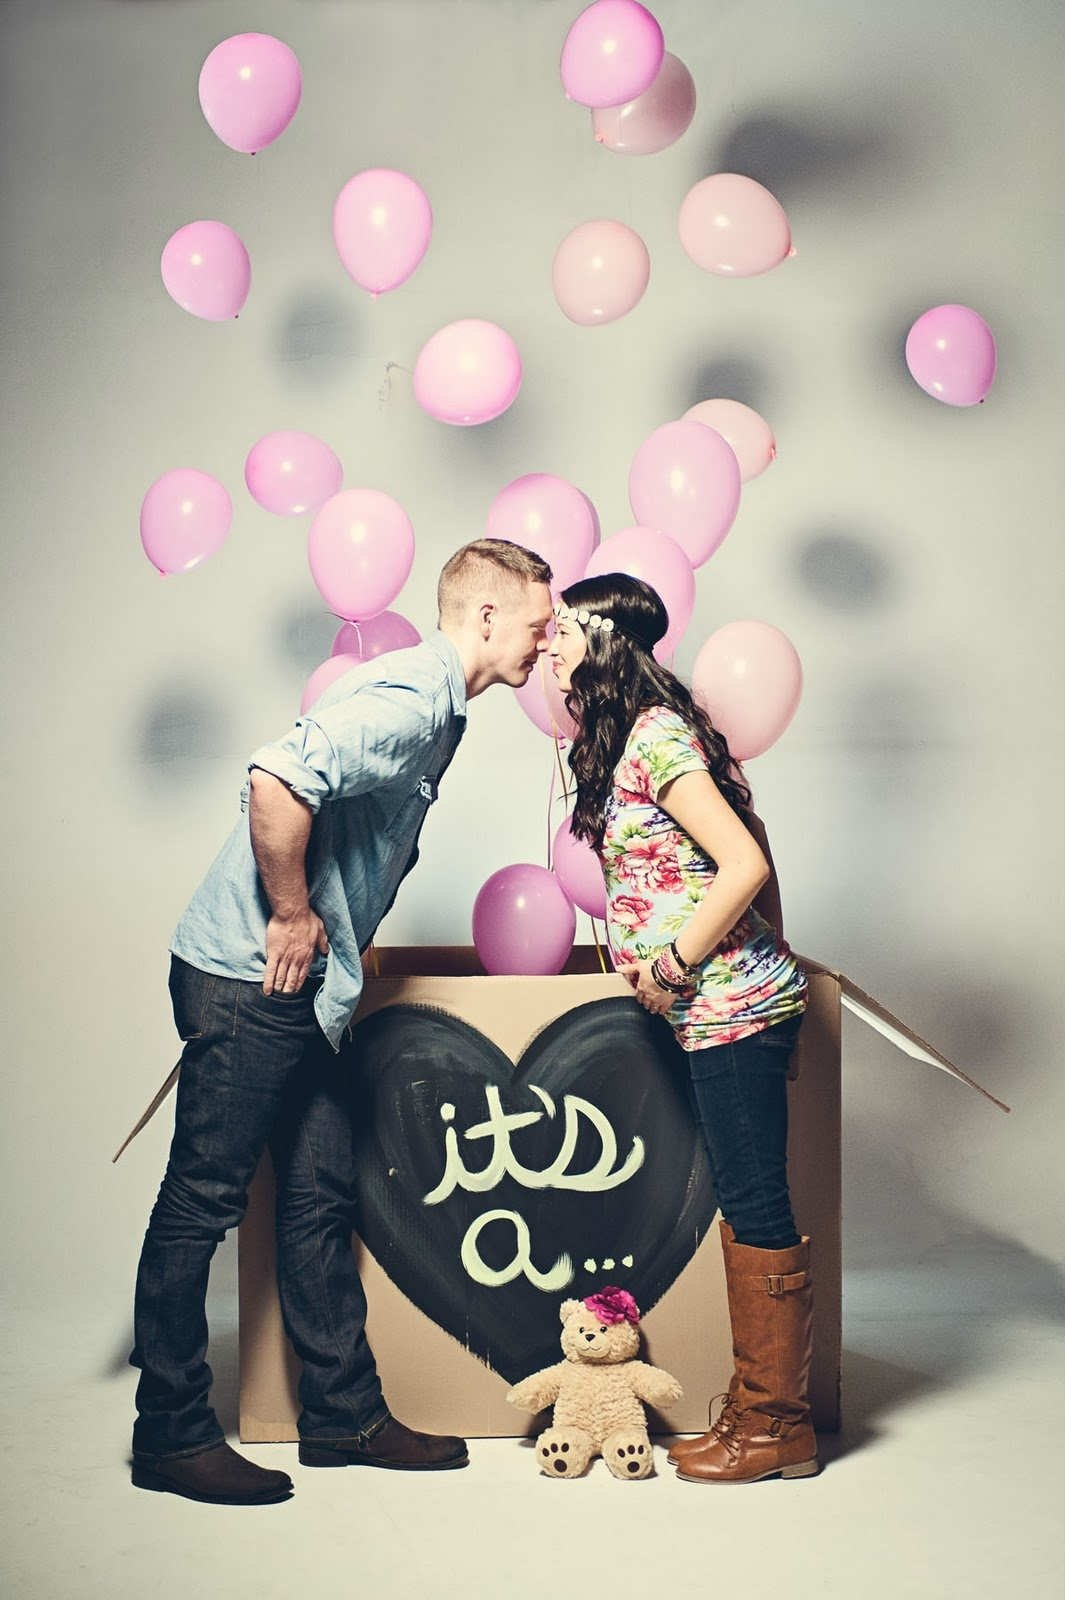 10 Cute Cute Ideas For Revealing Baby Gender 10 creative gender reveal ideas tinyme blog 2 2020